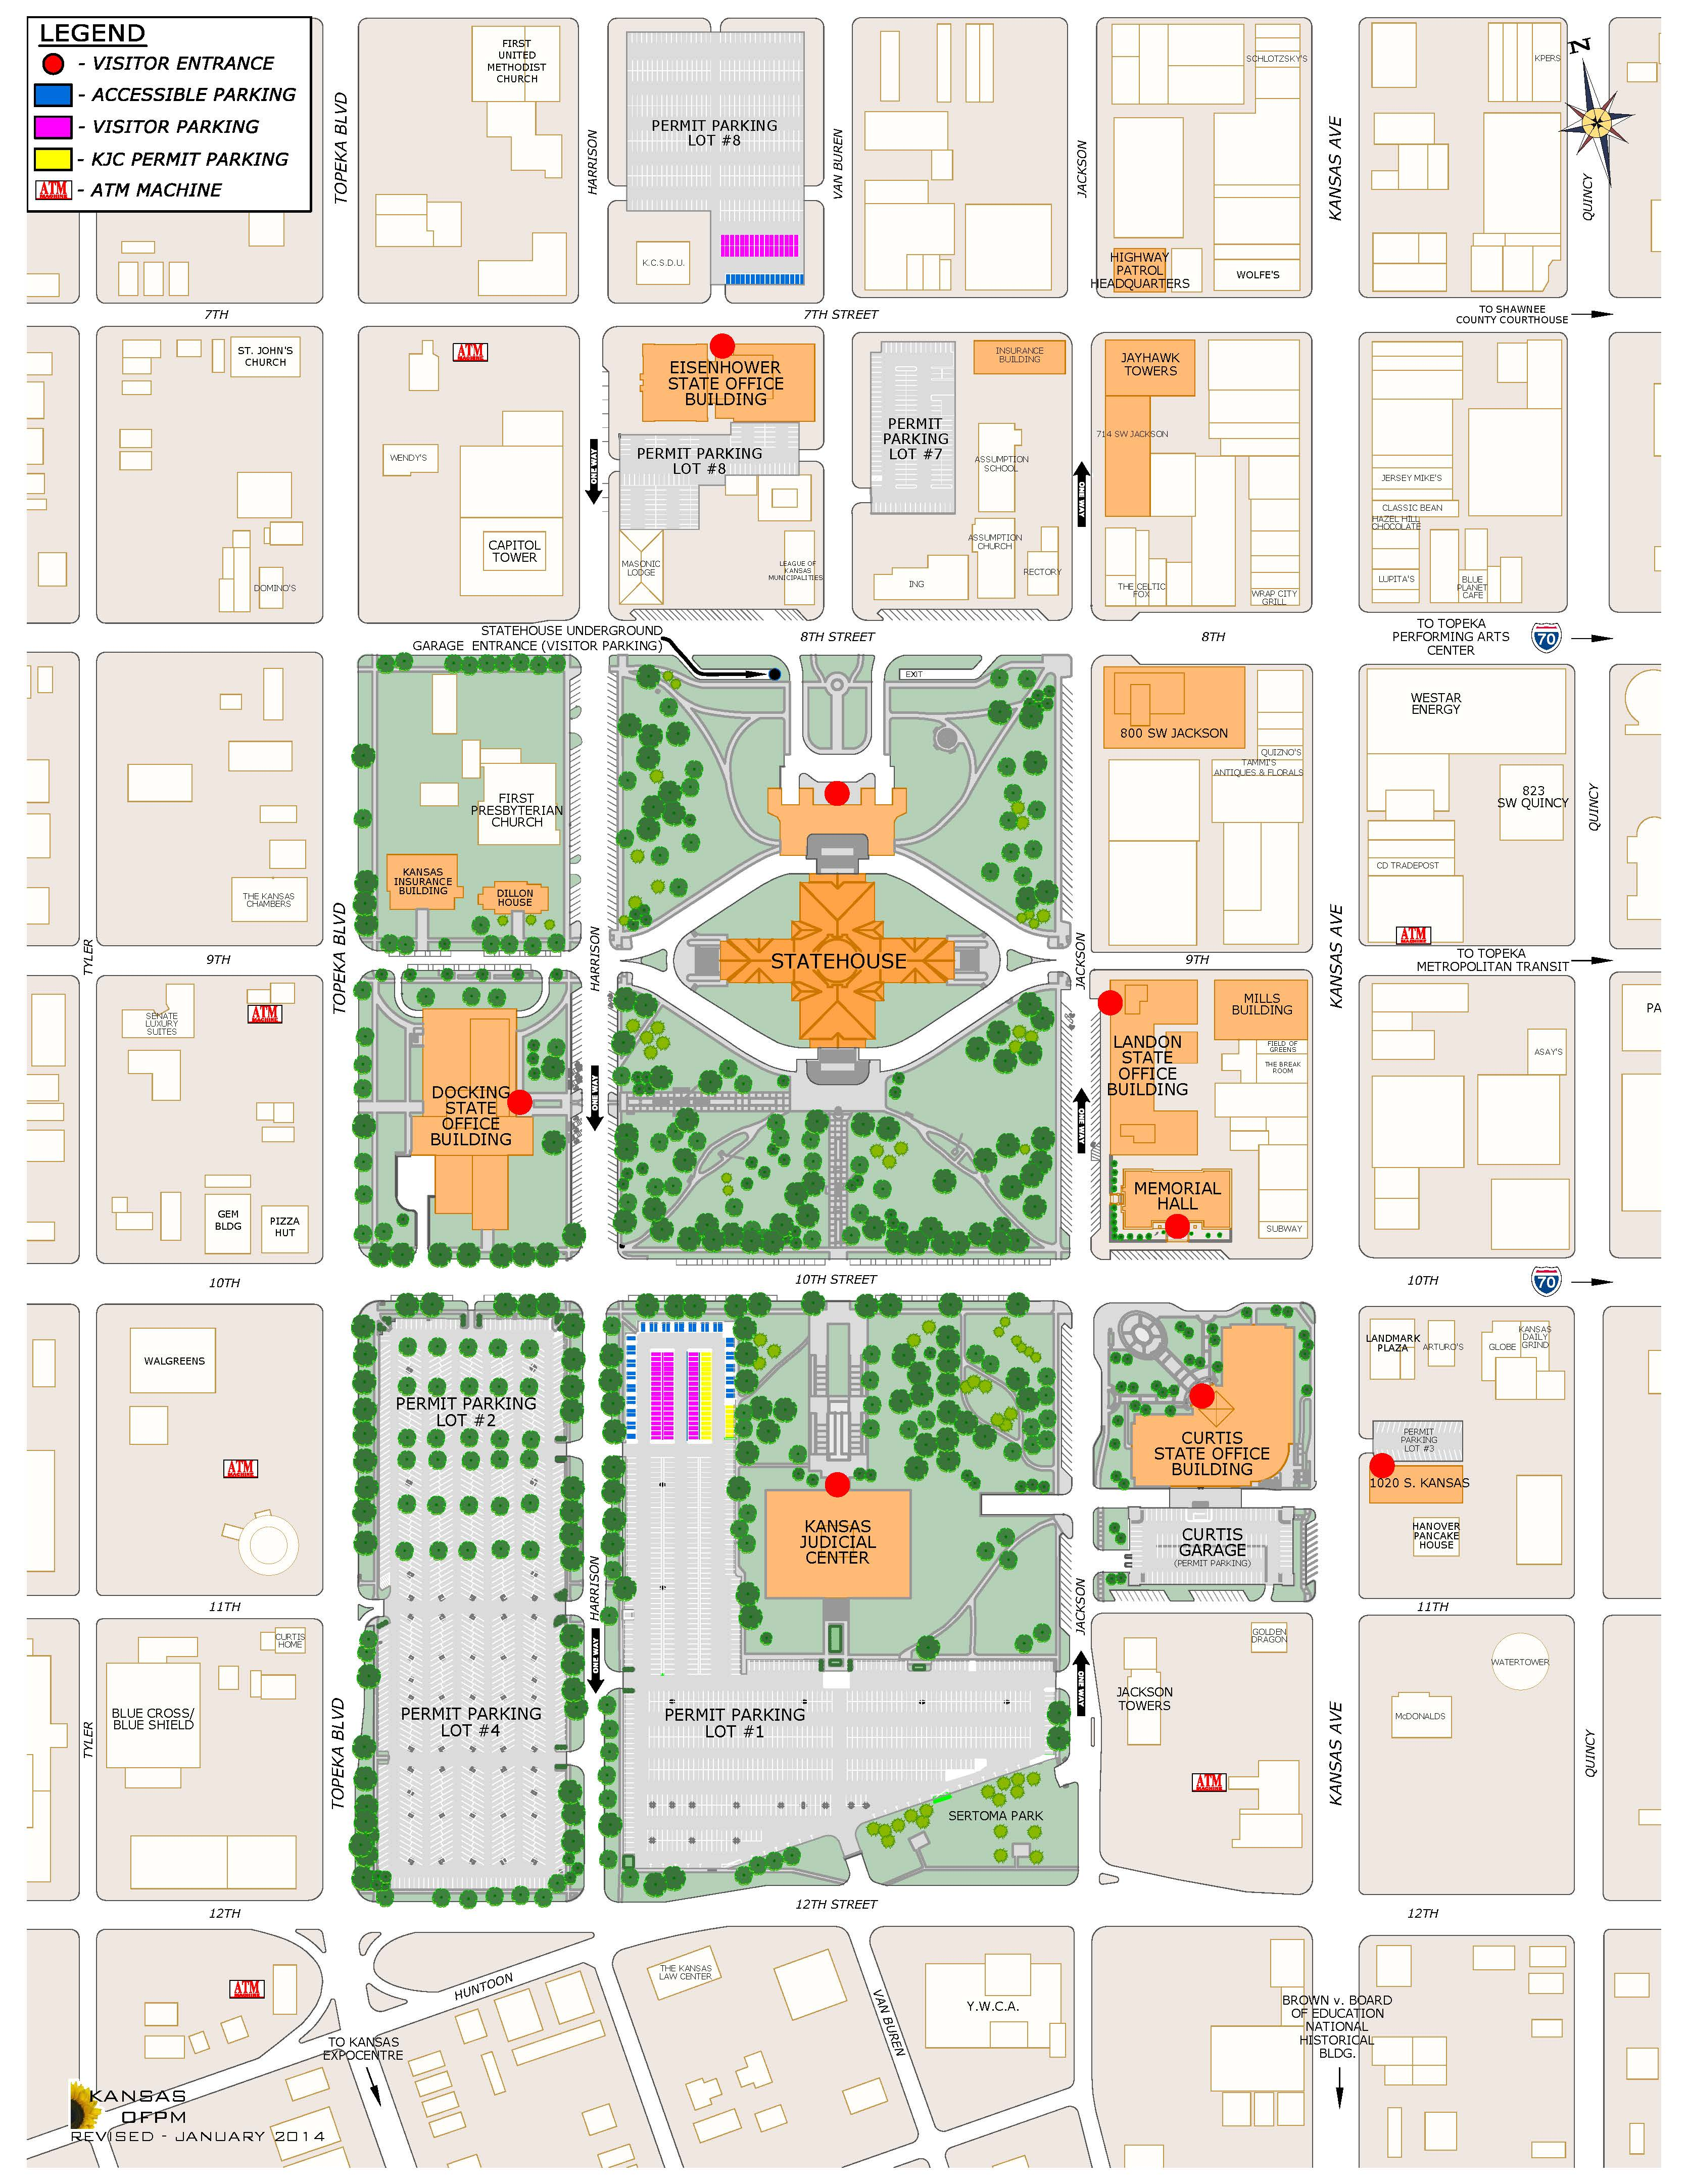 PARKING updatedcapitolcomplexsiteplan2011